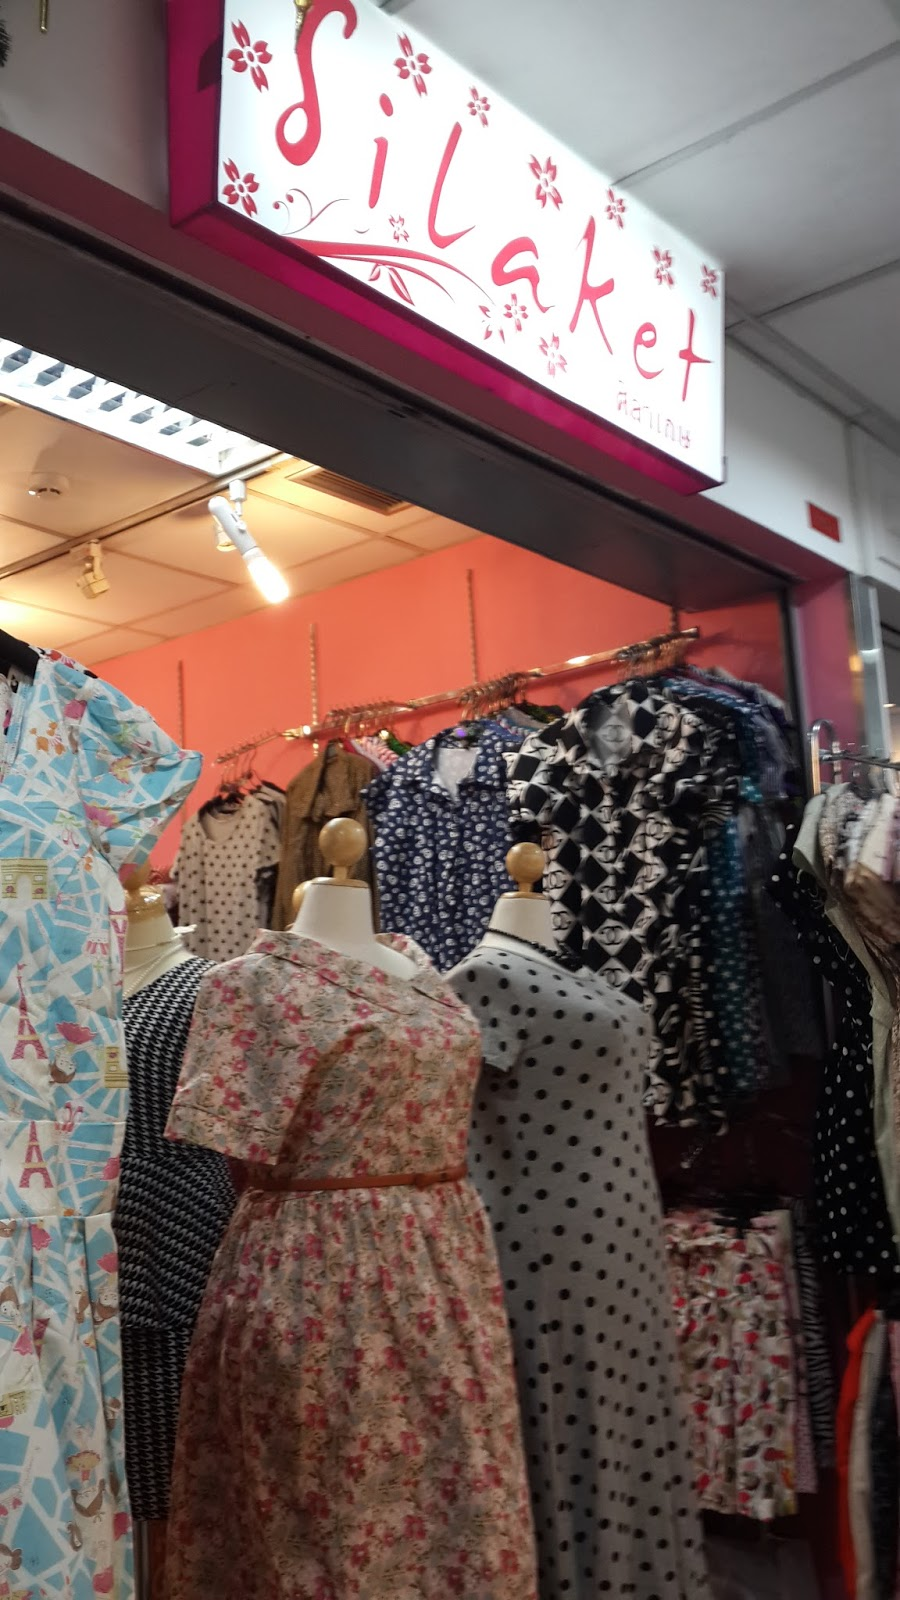 Overweight clothing stores